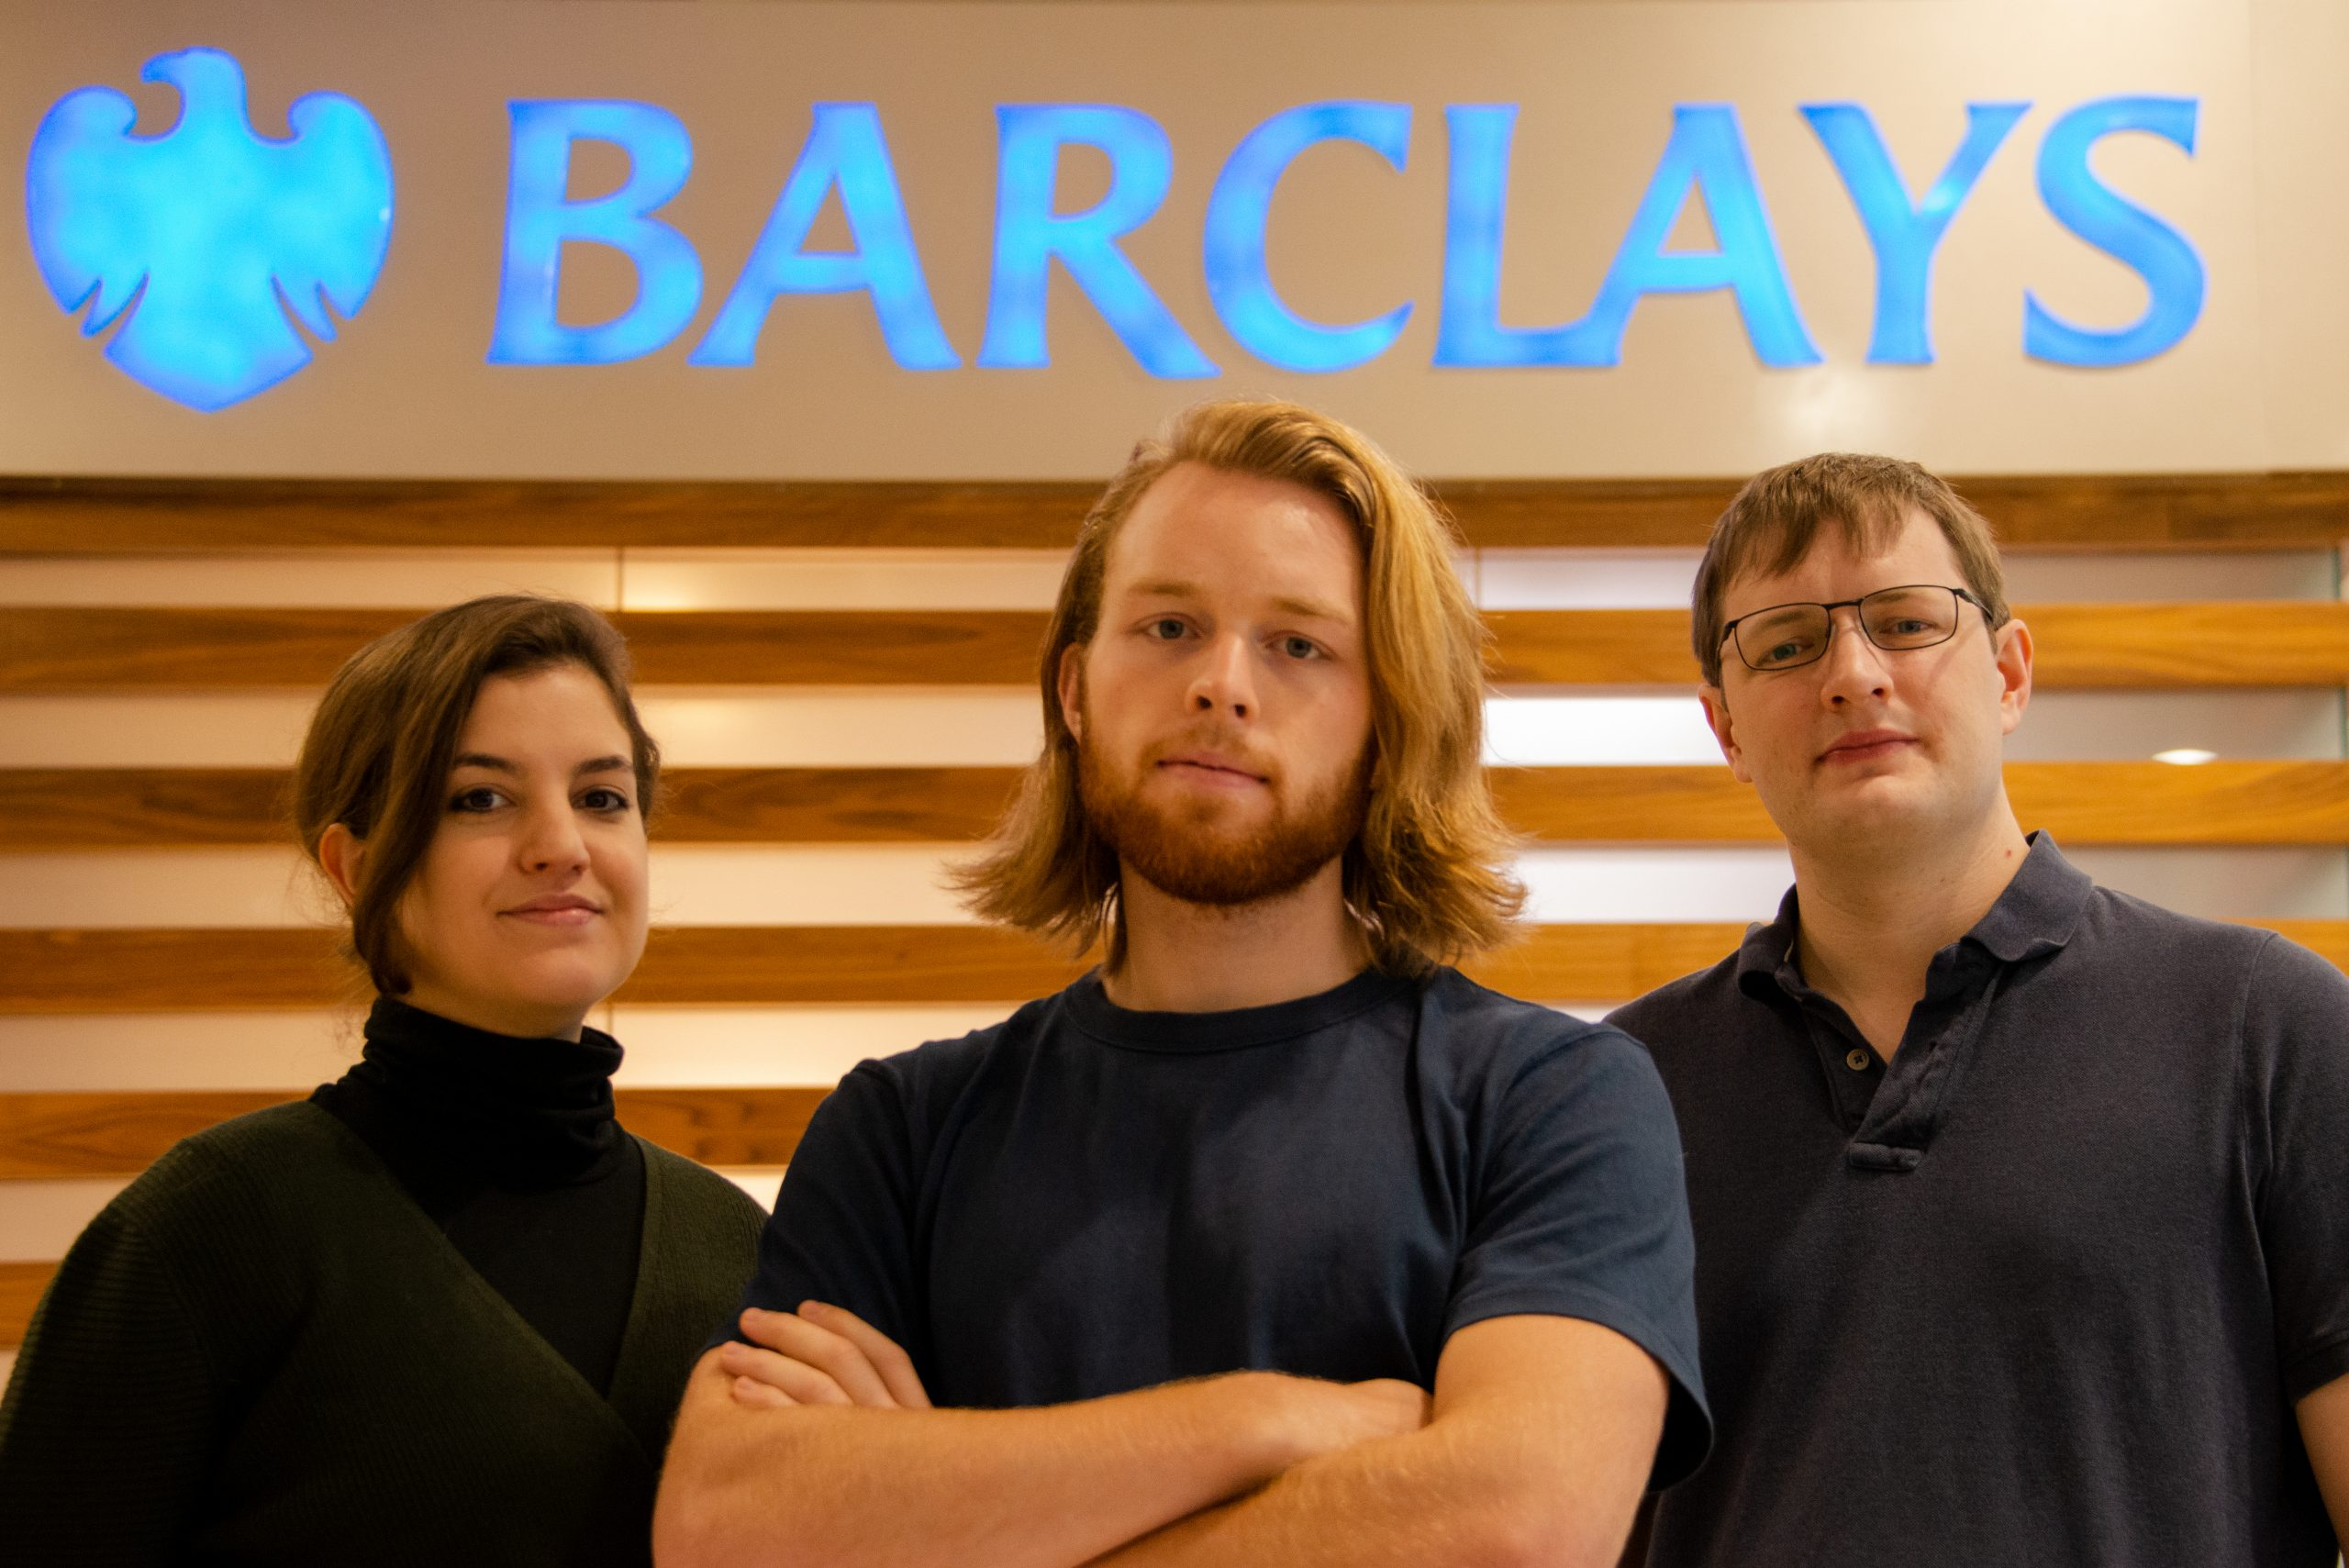 Barclays takes a stake in digital receipts startup Flux - CityAM